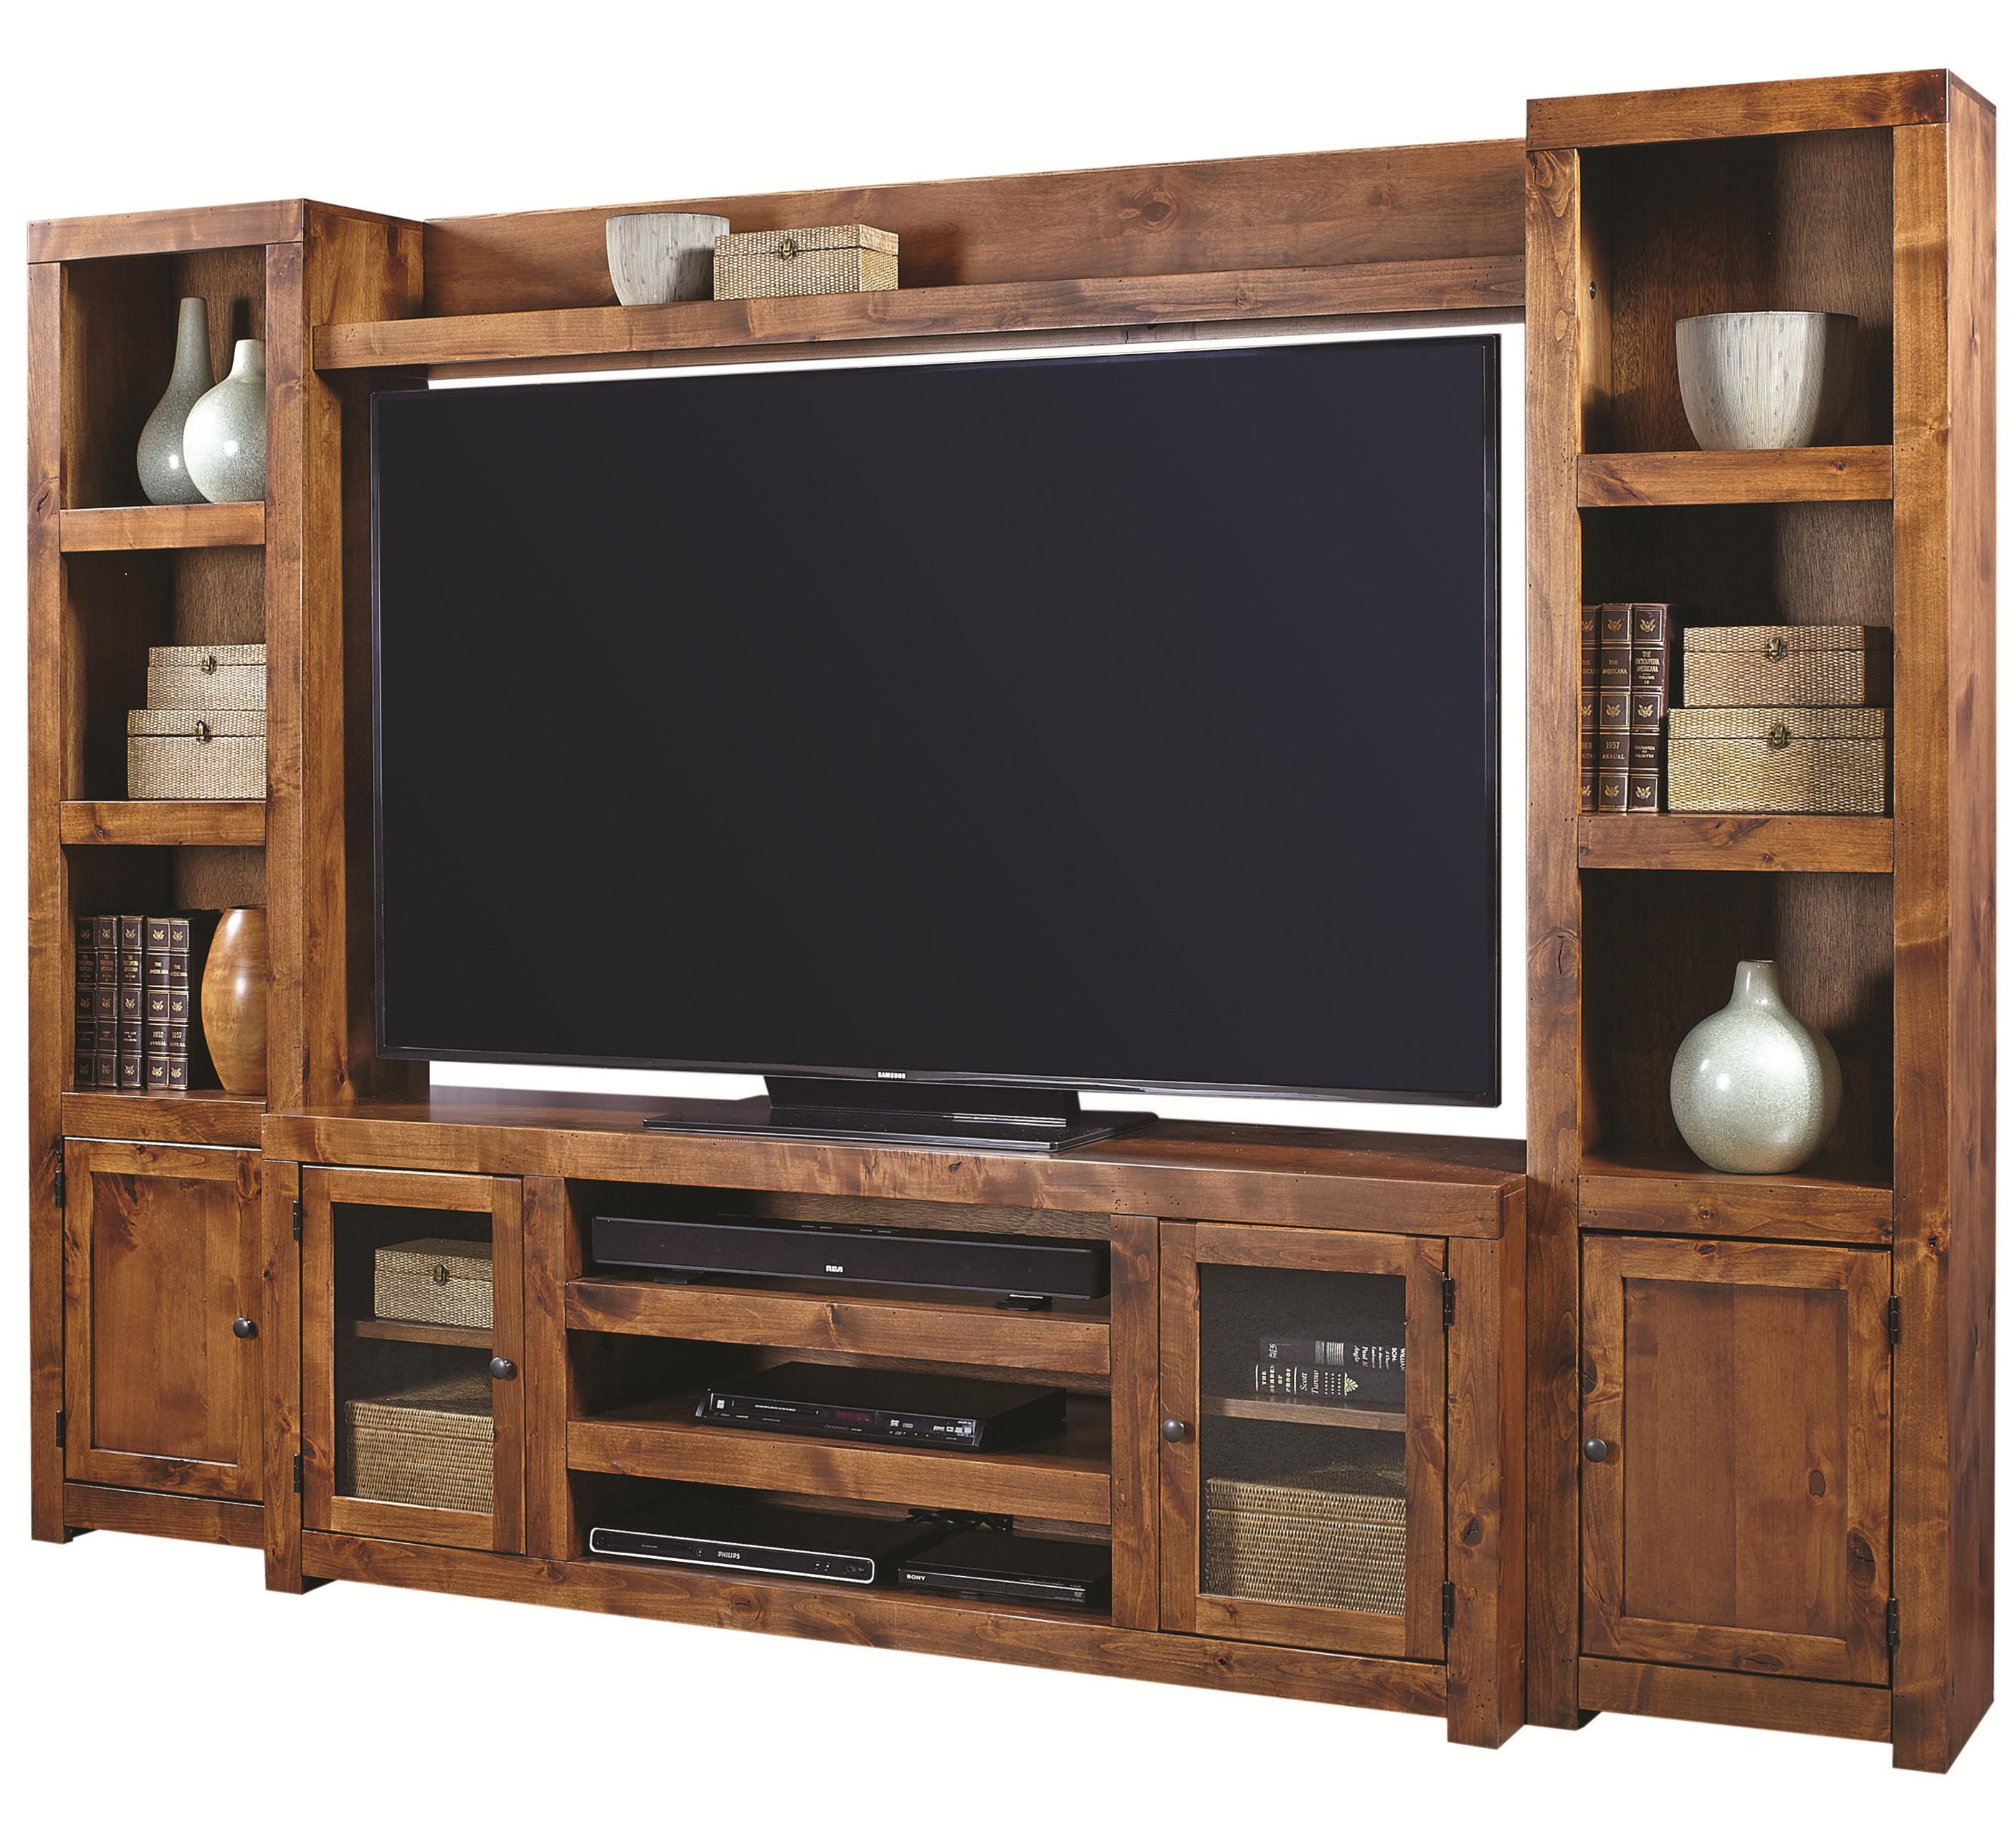 Aspenhome Contemporary Alder Entertainment Wall - Item Number: DL1073+173+118L+118R-FRT